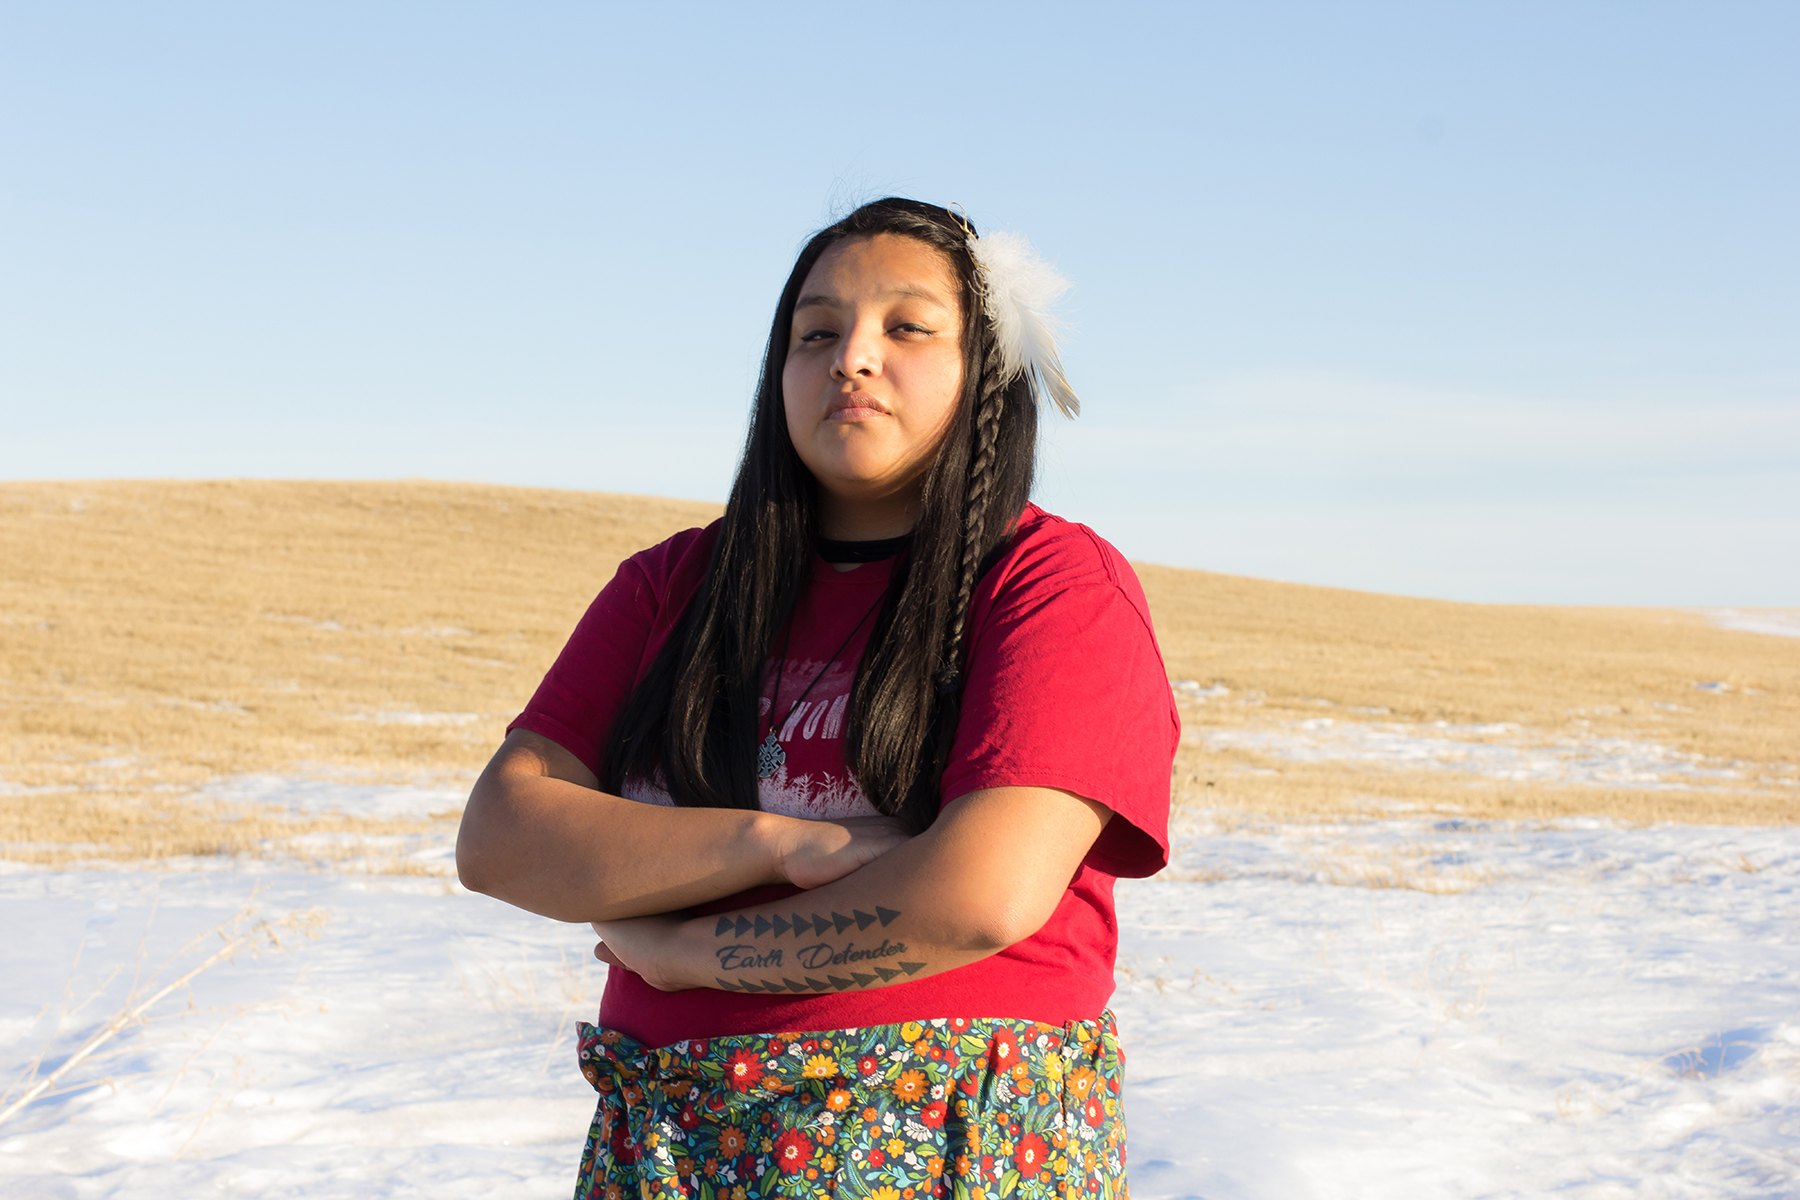 Jasilyn Charger, who led protesters at Standing Rock, says activism gave her friends hope.